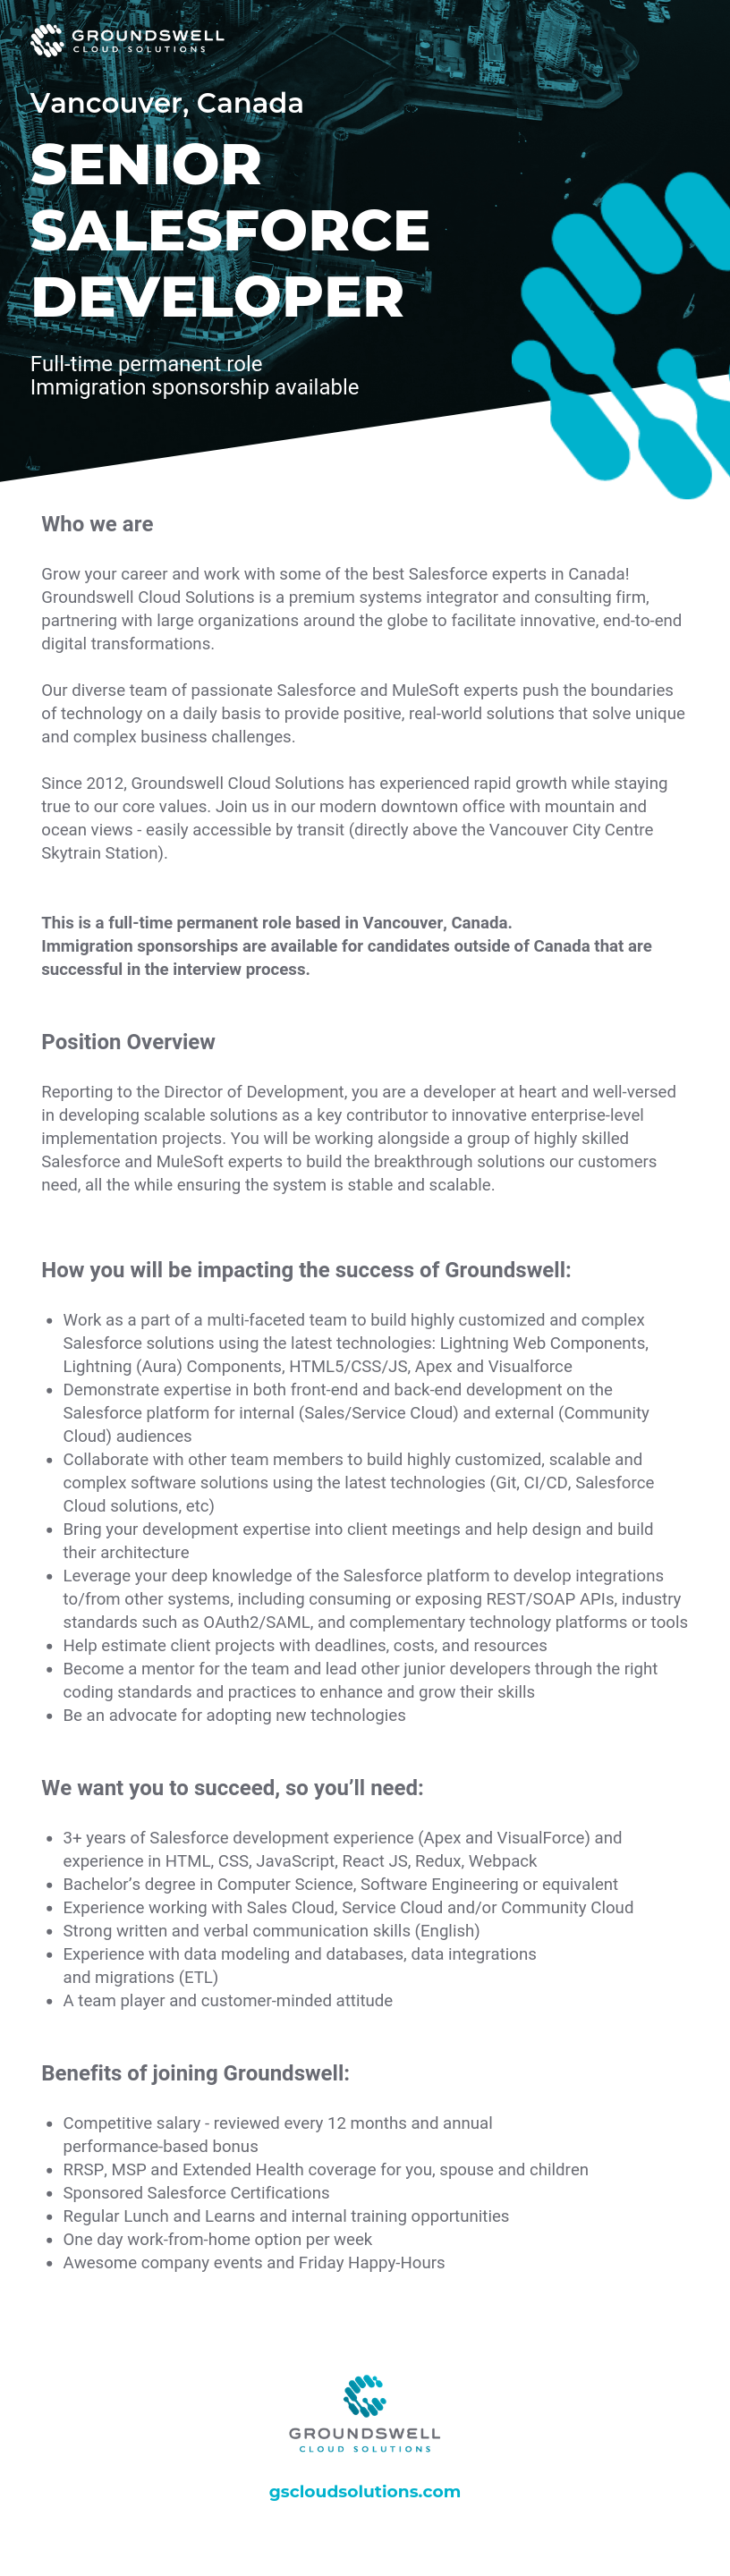 3+years of Agile development experience in Java or .Net frameworks, HTML, CSS, JavaScript, React JS, Redux, Webpack Experience with data modeling and databases (ETL) A team player and customer-minded attitude Previous exposure to Salesforce eco-system is a bonus  Position Overview:  In this role, your code will have a significant and measurable positive impact on our client's bottom line. You will be part of some of the most complex and unique projects in the Cloud-based ecosystem. Reporting to the Director of Development Services, you are well-versed in developing scalable solutions and have been a key contributor to complex enterprise-level projects.  In this role you will be leading a team of highly skilled developers on very complex and unique projects, driving their technical direction and designs.   Benefits:  Competitive salary - reviewed every 12 months Annual performance-based bonus MSP and Extended Health coverage for you, spouse and children Sponsored Salesforce Certifications Regular Lunch and Learns and internal training opportunities One day work-from-home option per week Awesome company events and Friday Happy-Hour events   How you will be impacting the success of Groundswell (what you will be doing):   You will be working with a group of highly technical engineers to build the breakthrough features our customers need all the while keeping our trusted platform stable and scalable. Use your expertise in Java or .Net development, as well as experience with HTML, CSS, JavaScript, React JS, Redux, Webpack to help shape the technical roadmap of Groundswell Work as part of a multi-faceted team to build highly customized, scalable and complex software solutions using the latest technologies (Git, CI/CD, Salesforce Cloud solutions, etc) Bring your development expertise into client meetings and help design and build their architecture Help estimate client projects with deadlines, costs, and resources Become a mentor for the team and lead other junior developer